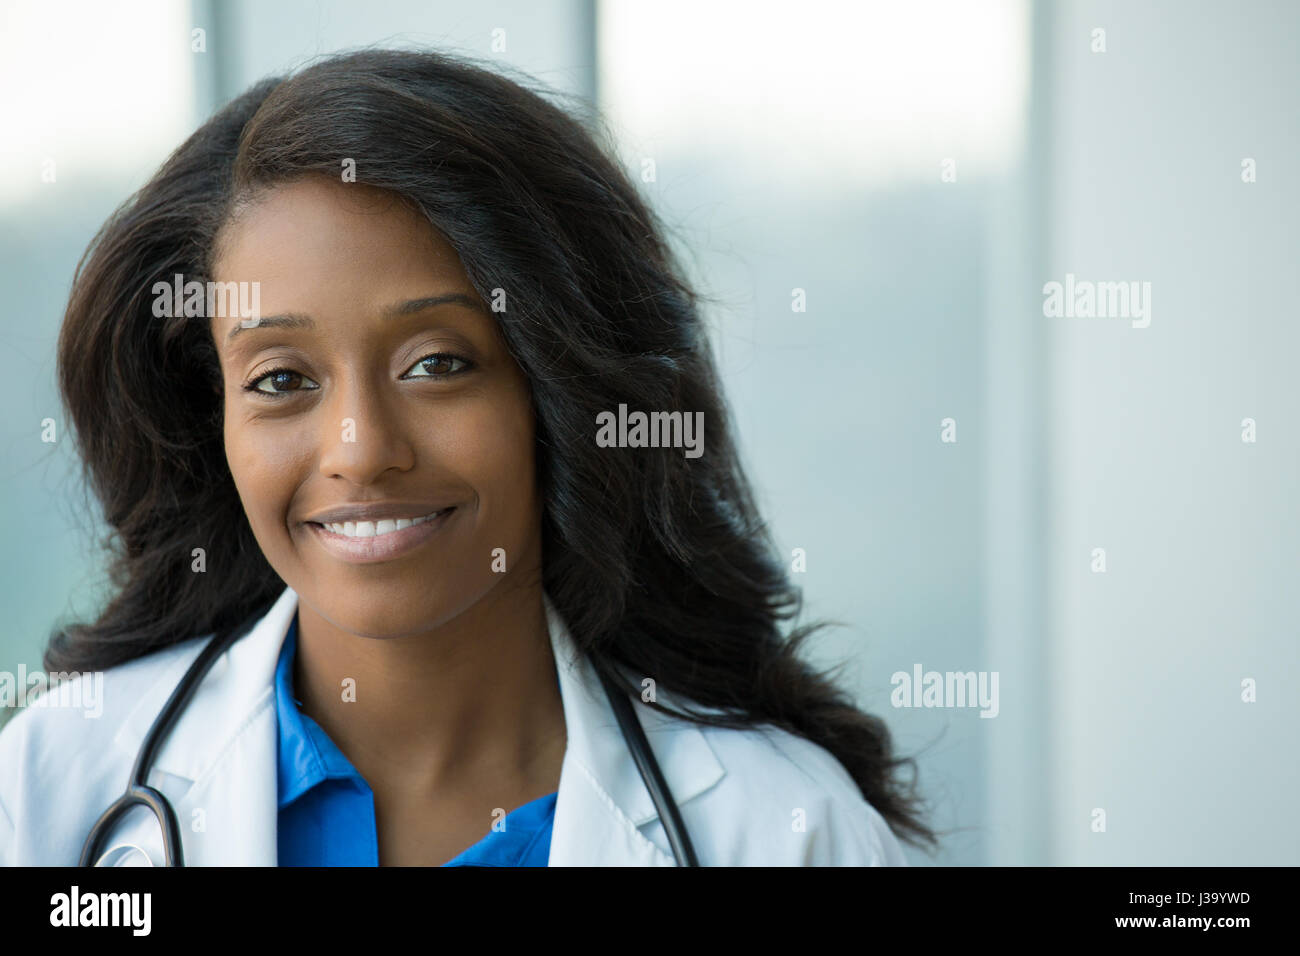 Closeup portrait of friendly, smiling confident female healthcare professional with lab coat, stethoscope, arms Stock Photo